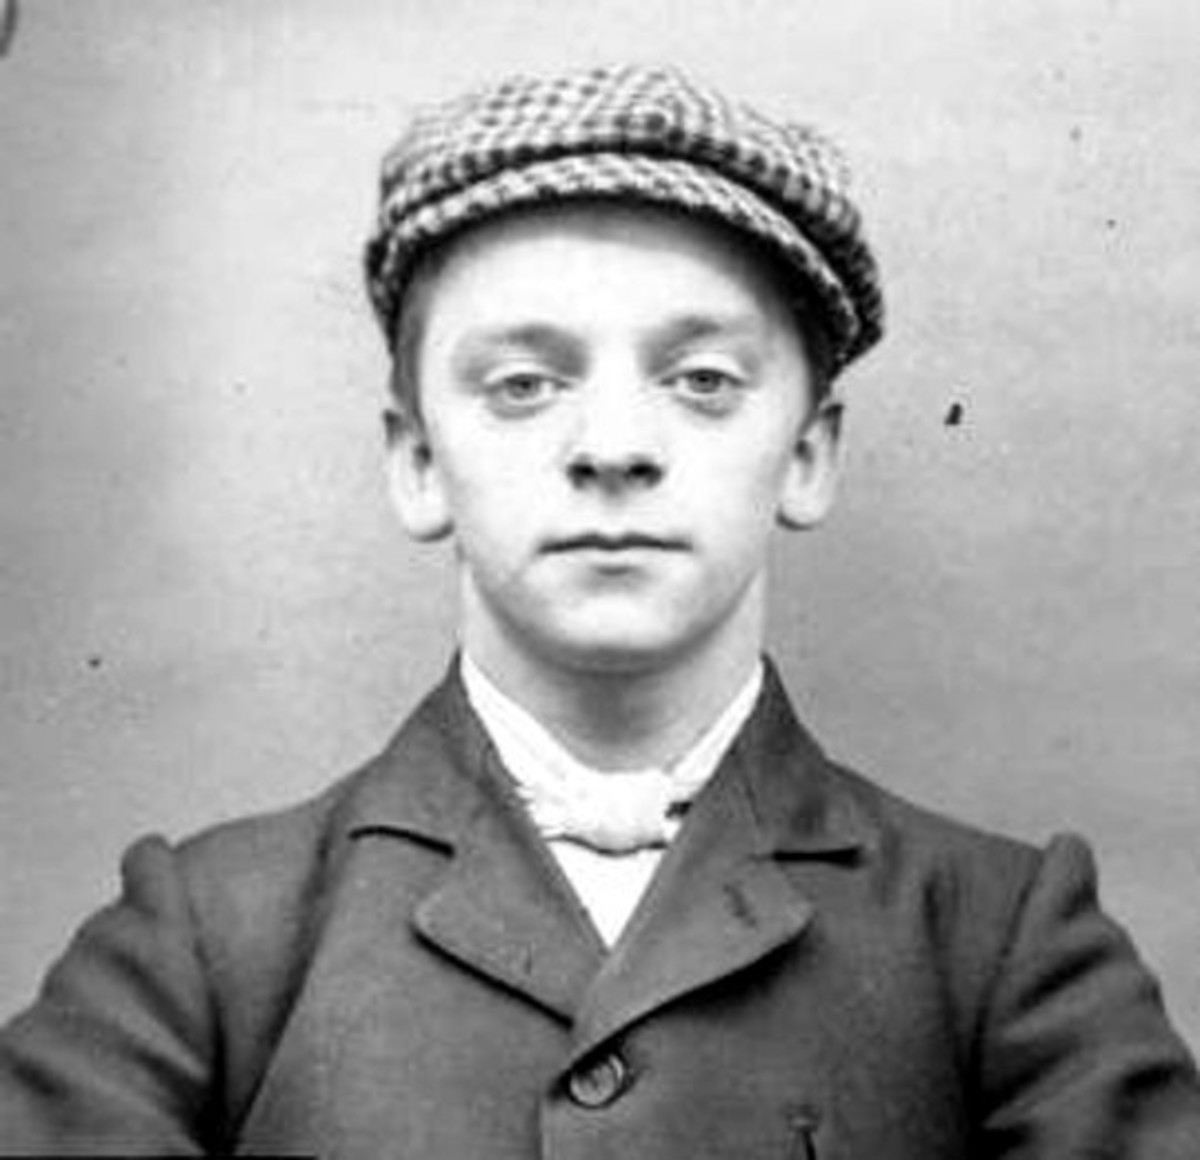 A police mugshot of Harry Fowles, a baby faced member of the real Peaky Blinders.